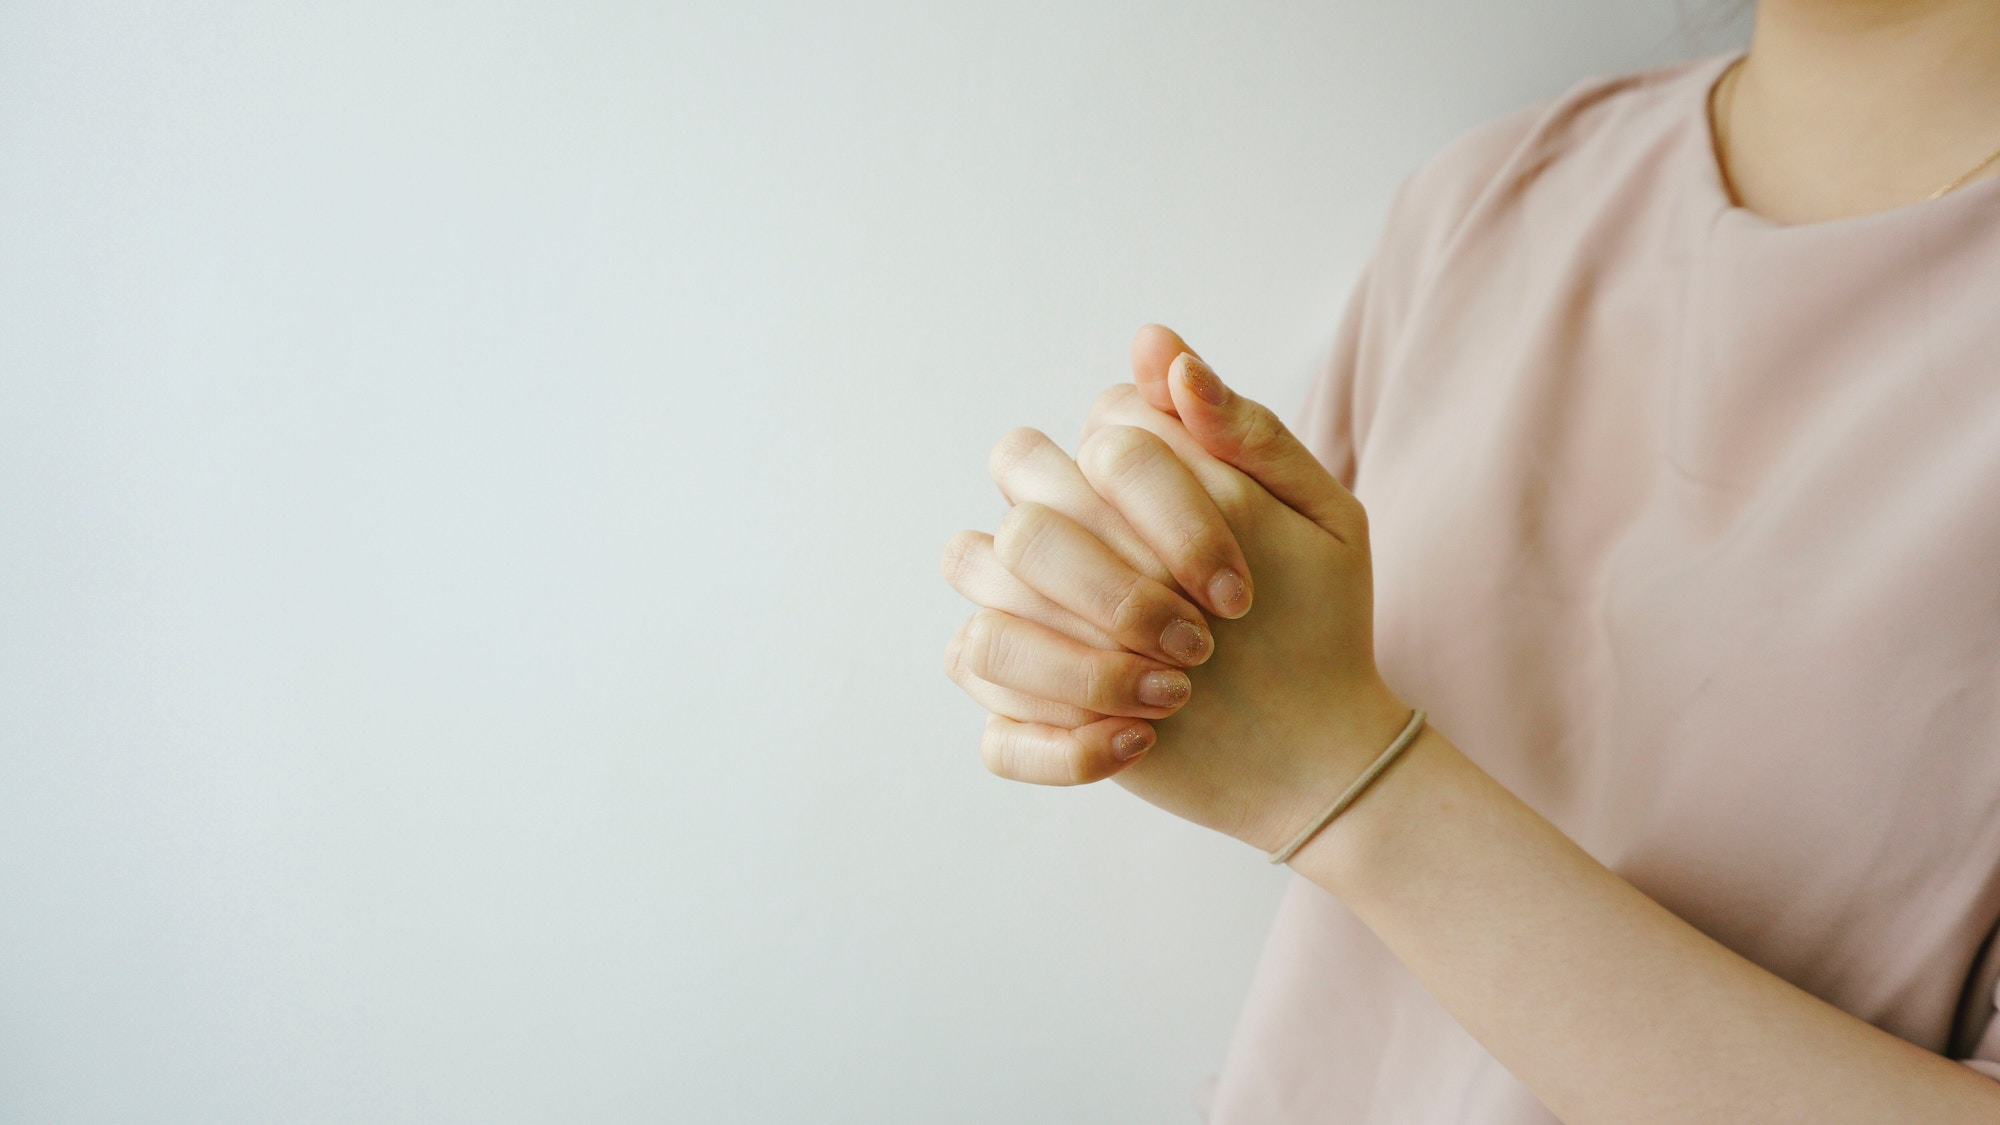 girl-folding-hands-in-prayer-pink-shirt-prayers-for-future-husband